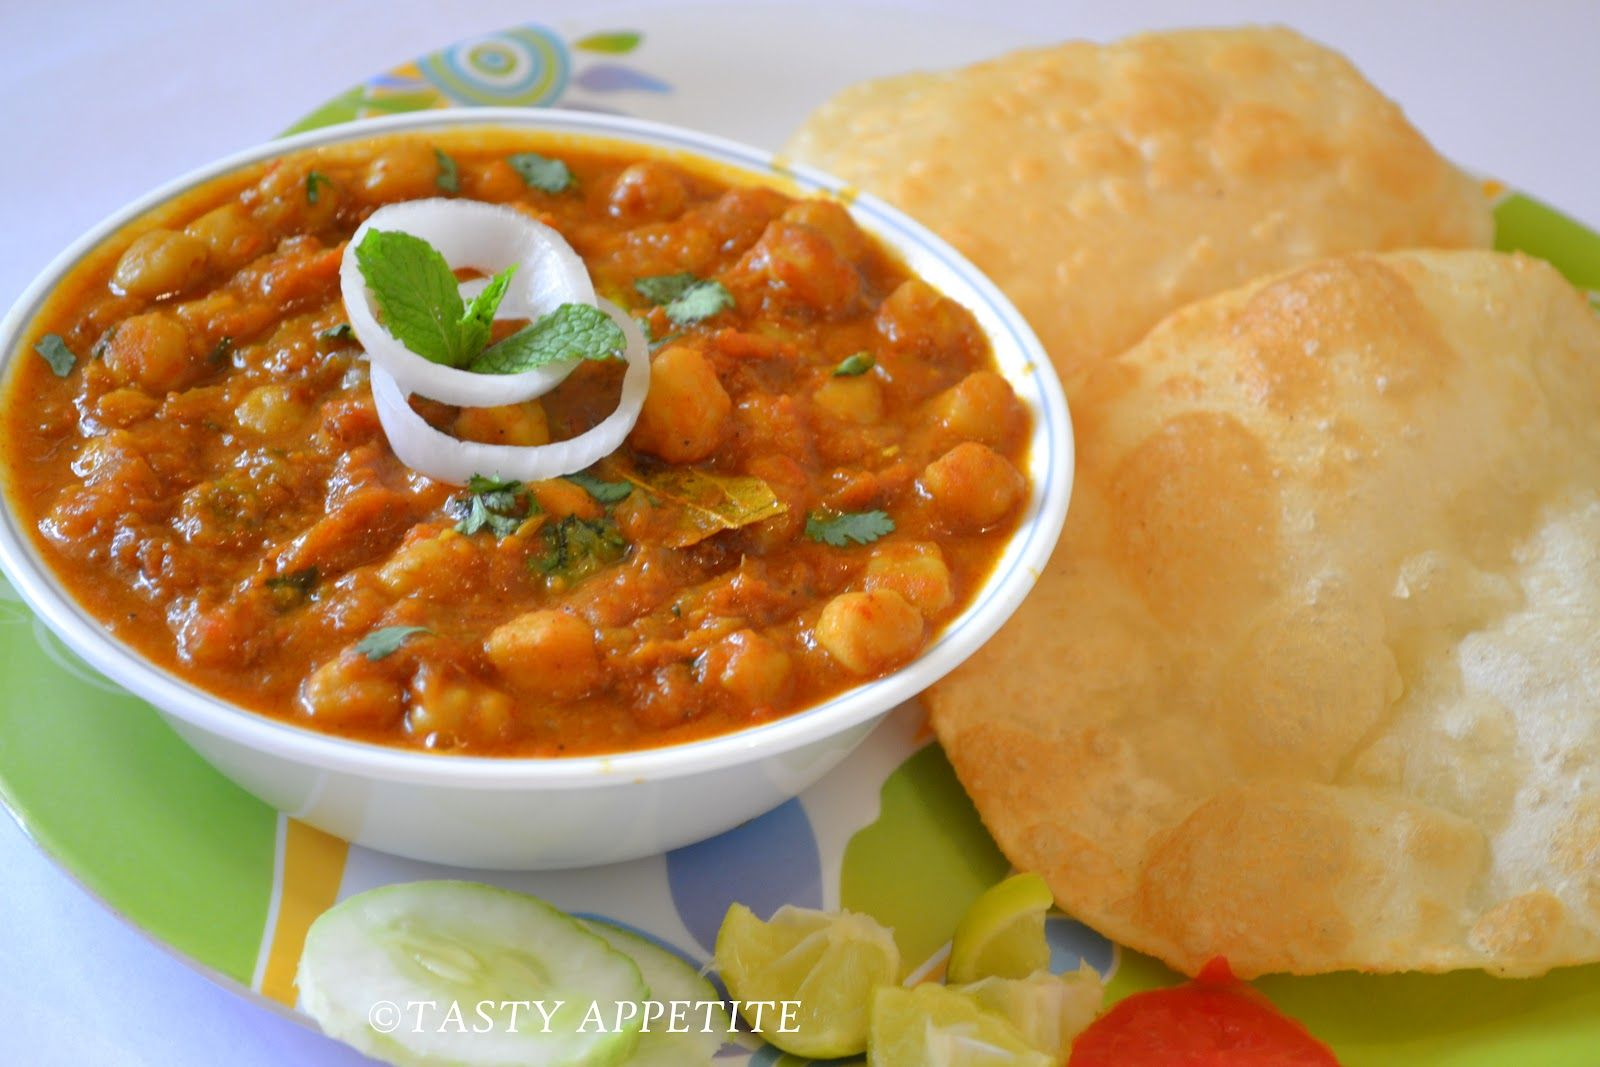 Chole bhature punjabi bhature recipe step by step tasty chole bhature punjabi bhature recipe step by step tasty appetite forumfinder Images